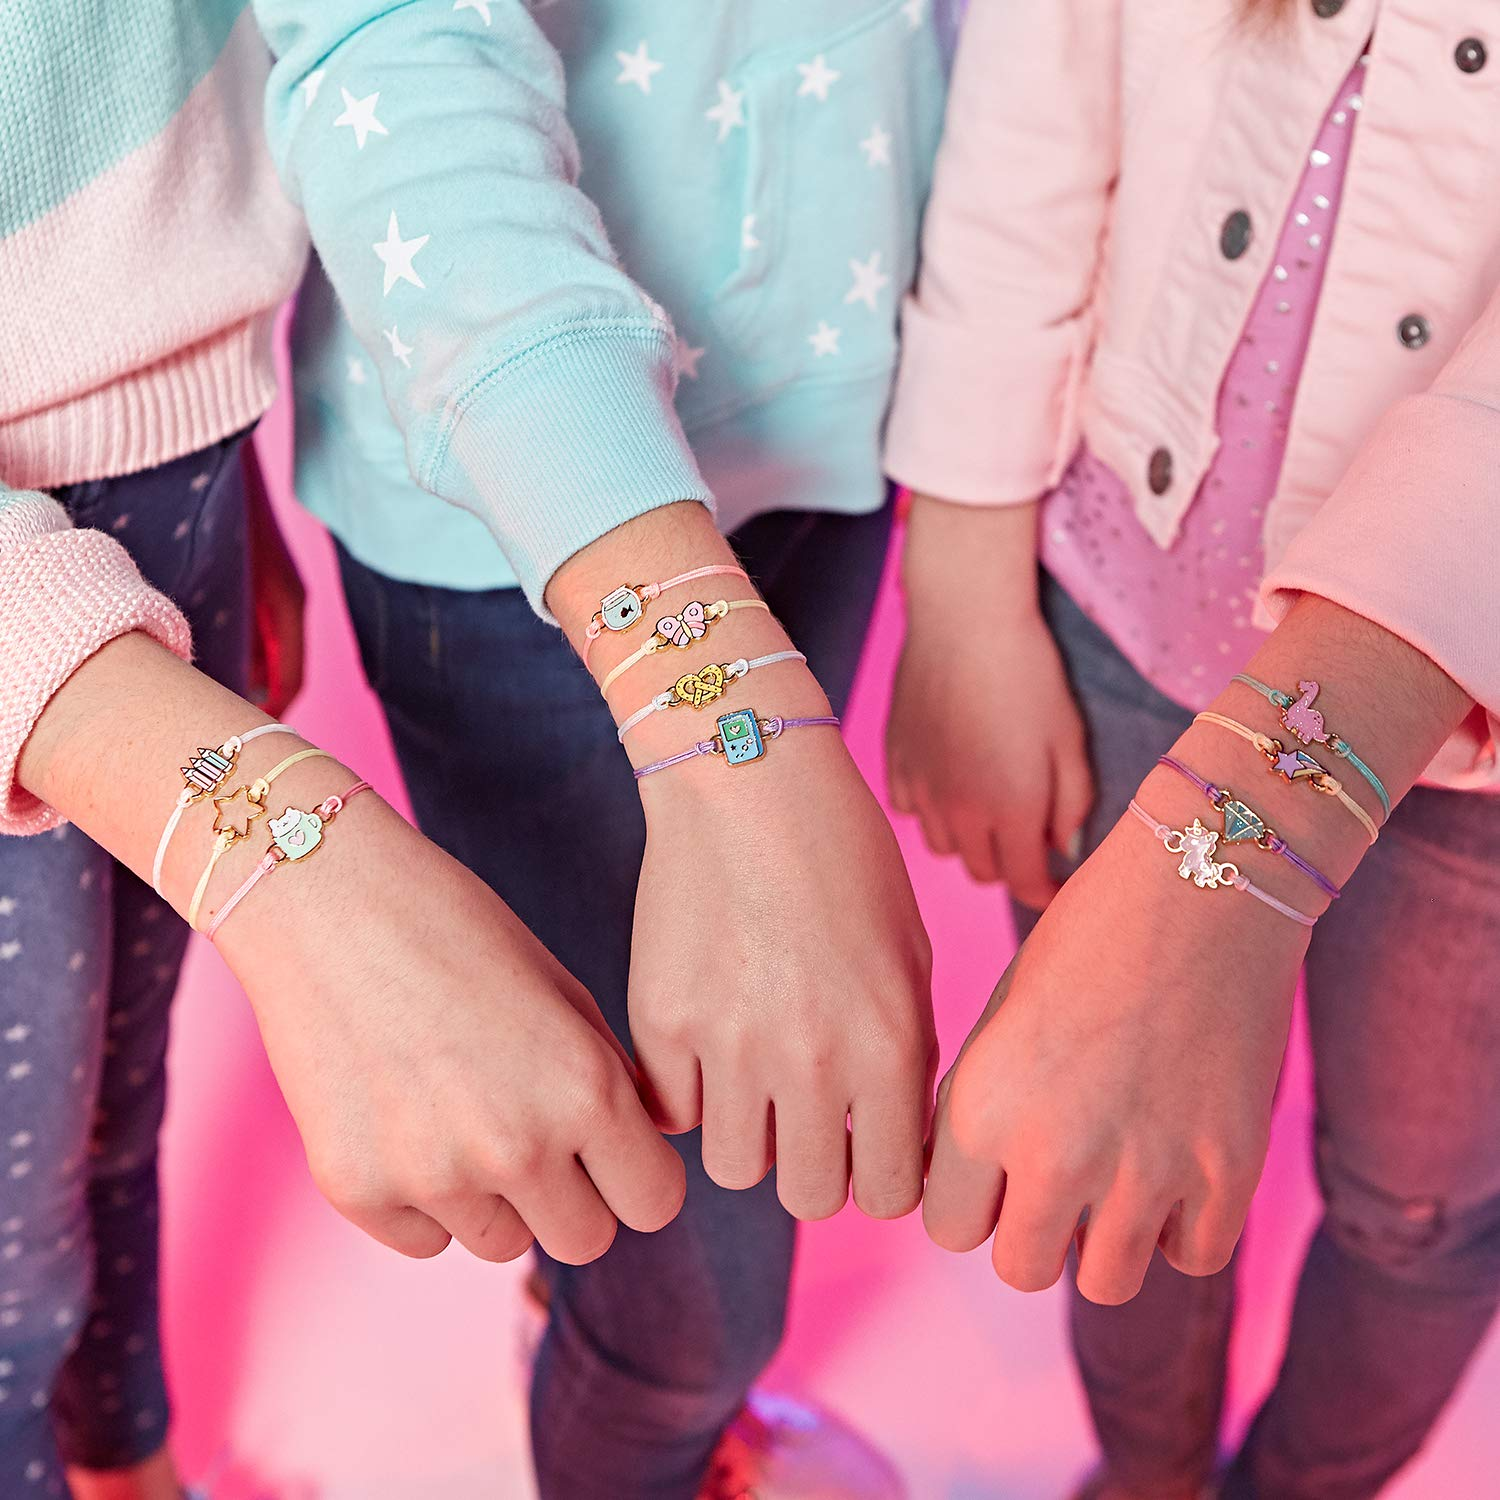 WowWee Lucky Fortune Blind Collectible Bracelets - 4 Pack Take-Out Box - Series 1 by WowWee (Image #6)